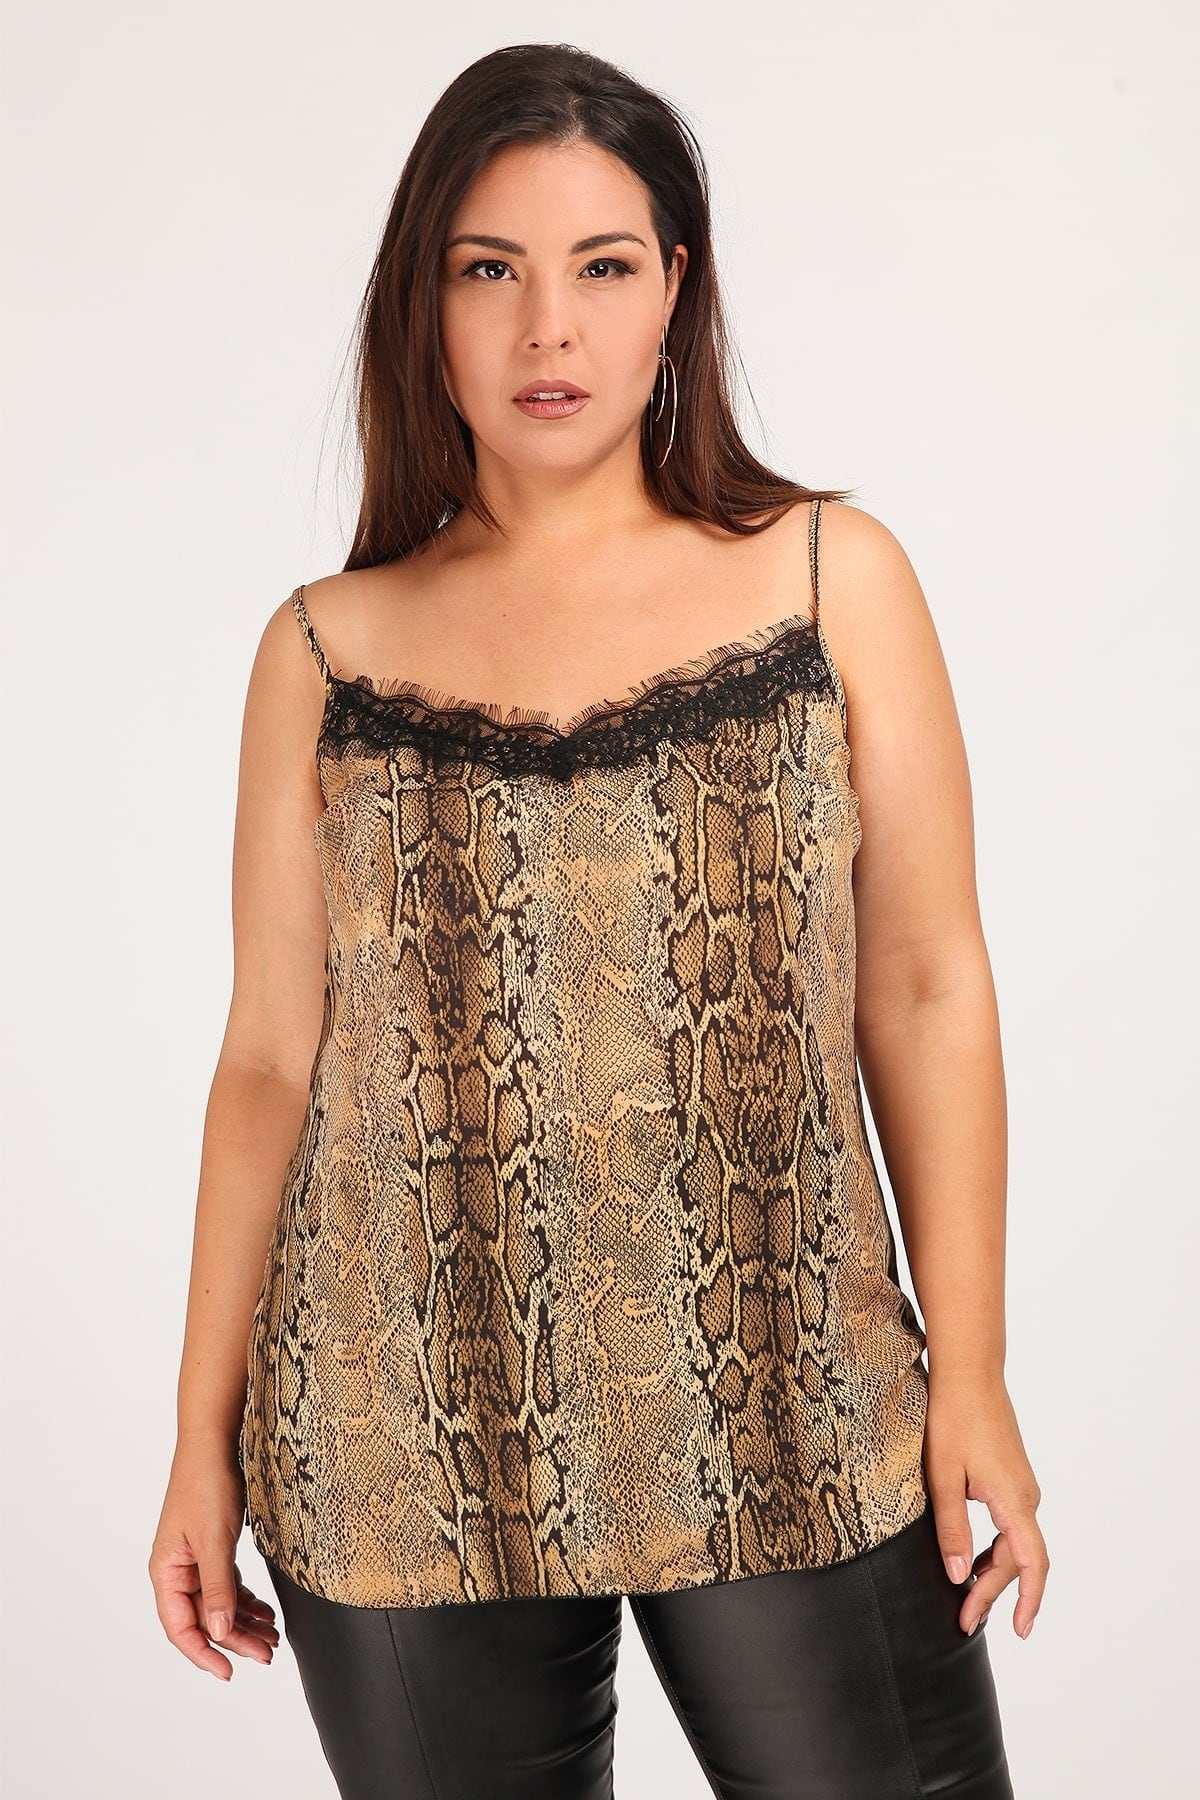 Printed snake lingerie top with lace